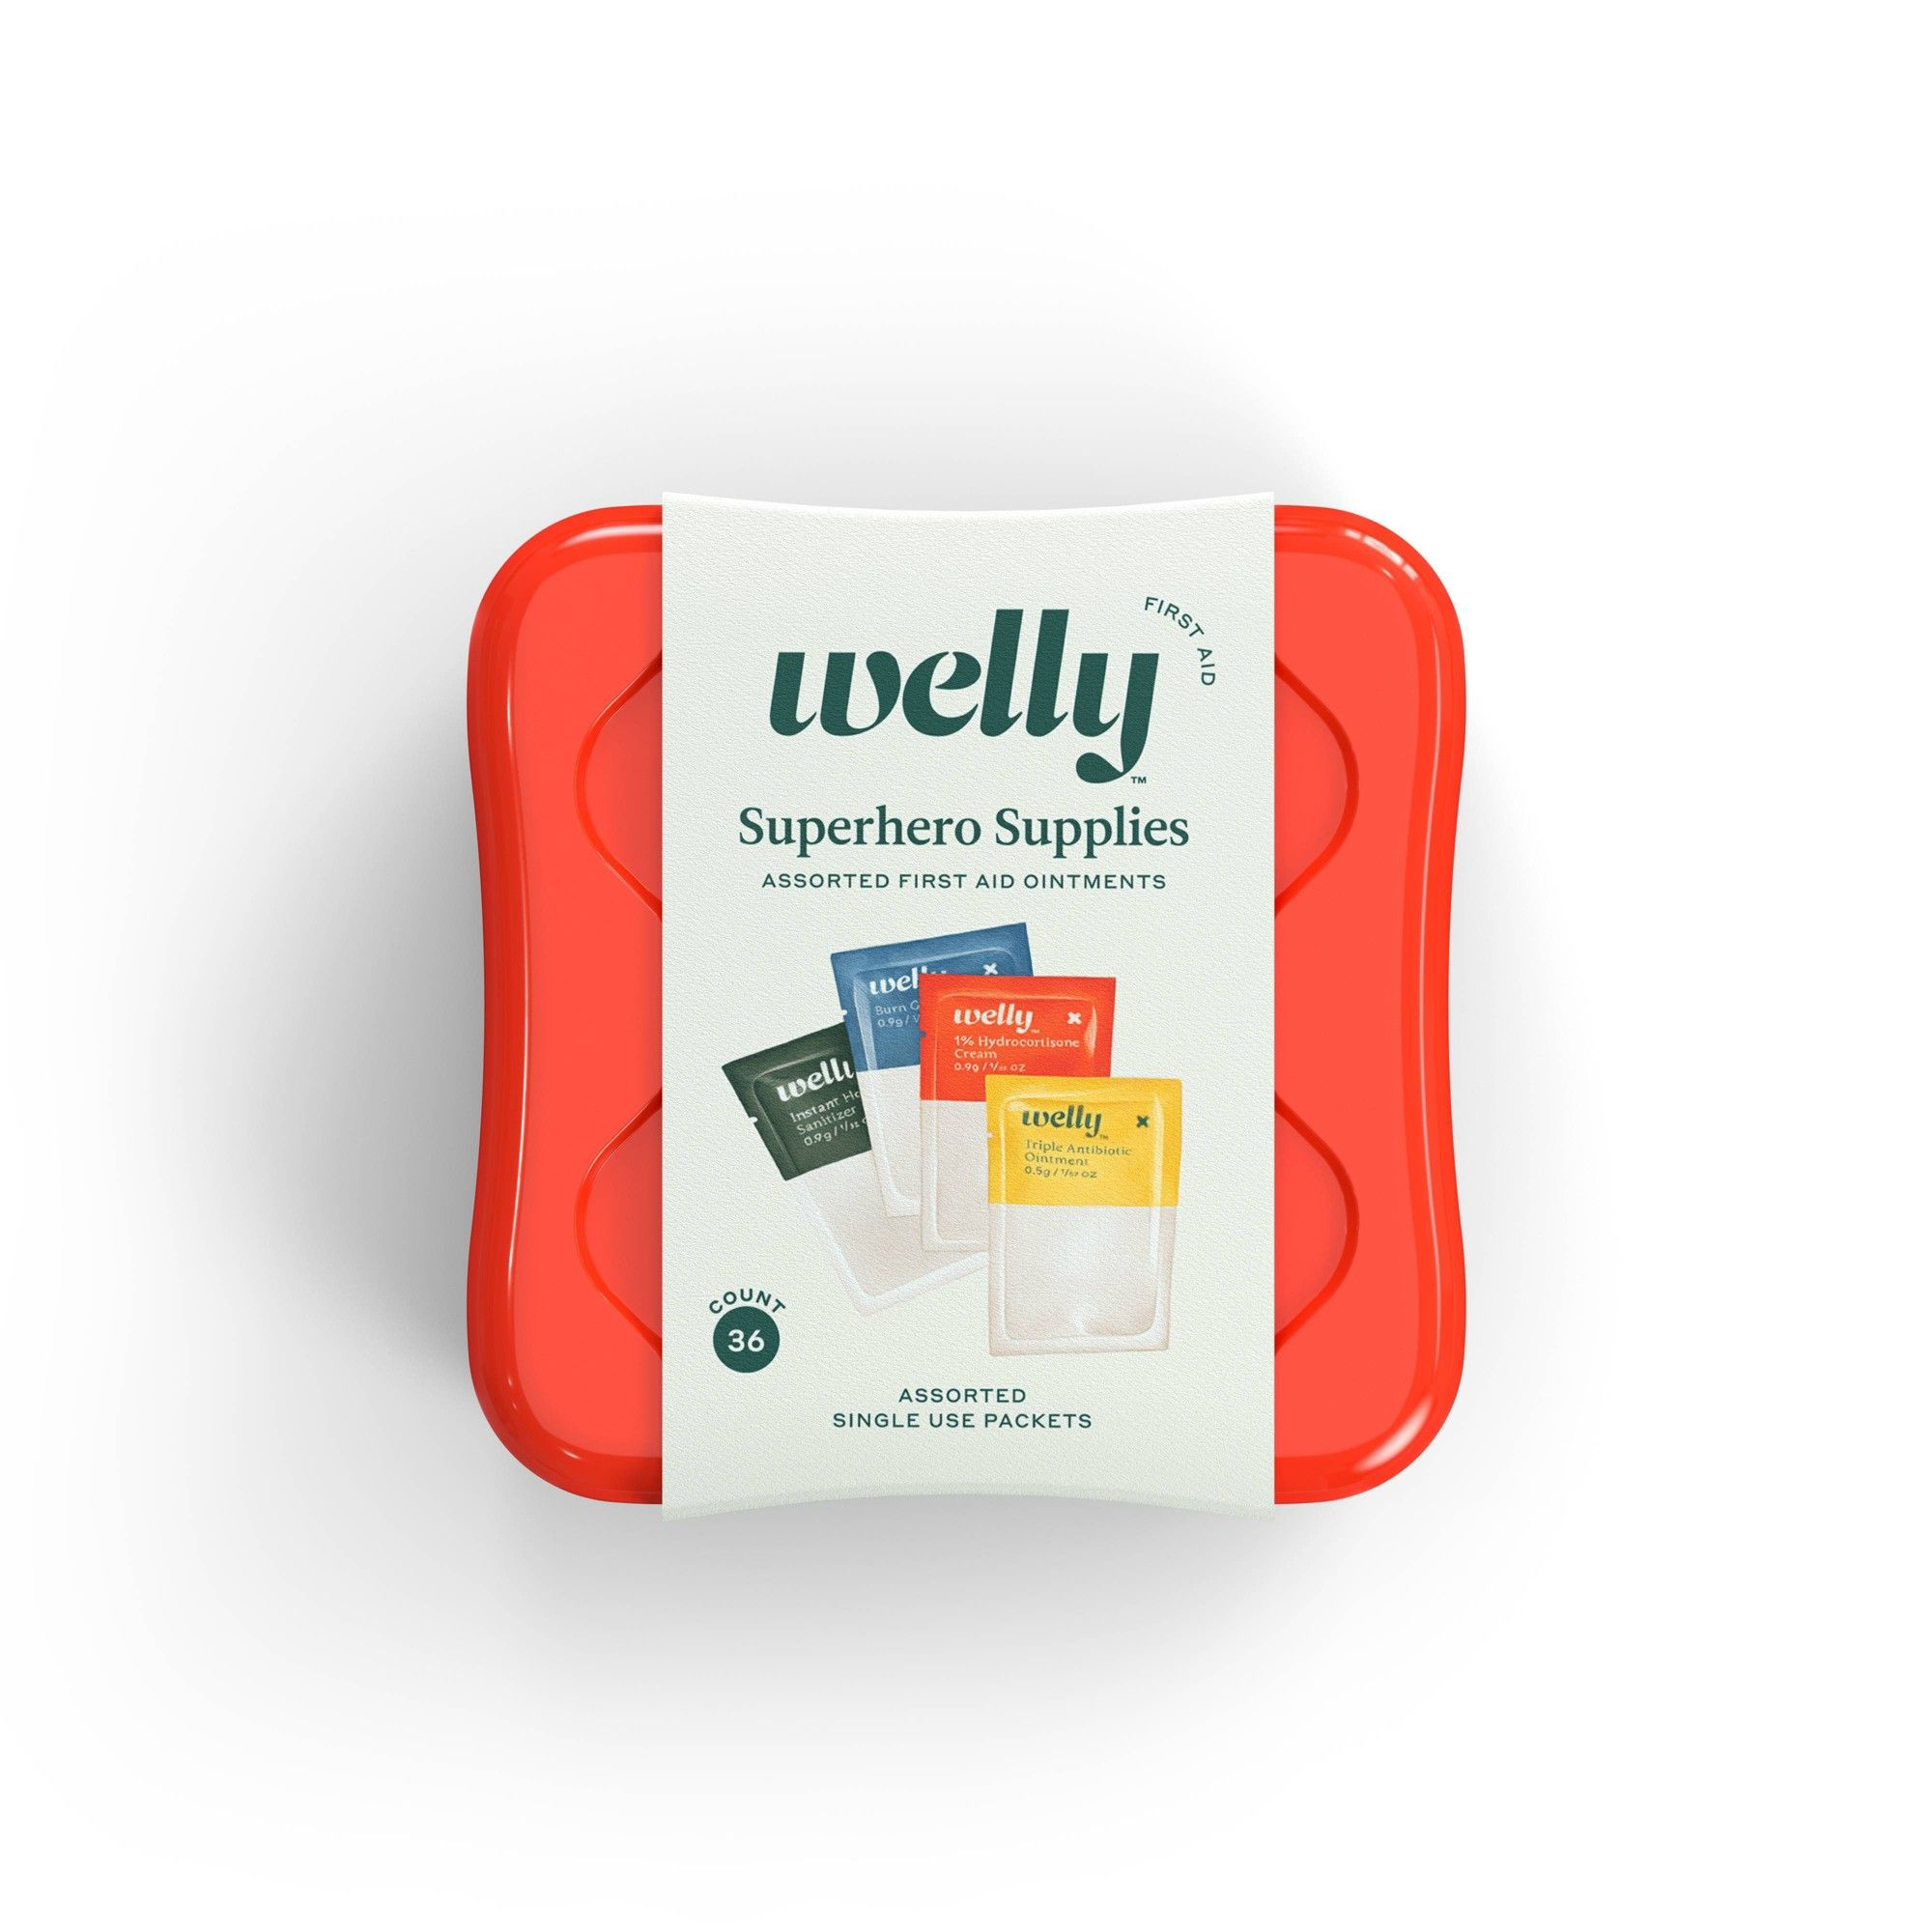 Welly Superhero Supplies Assorted Ointment First Aid Kit 36ct